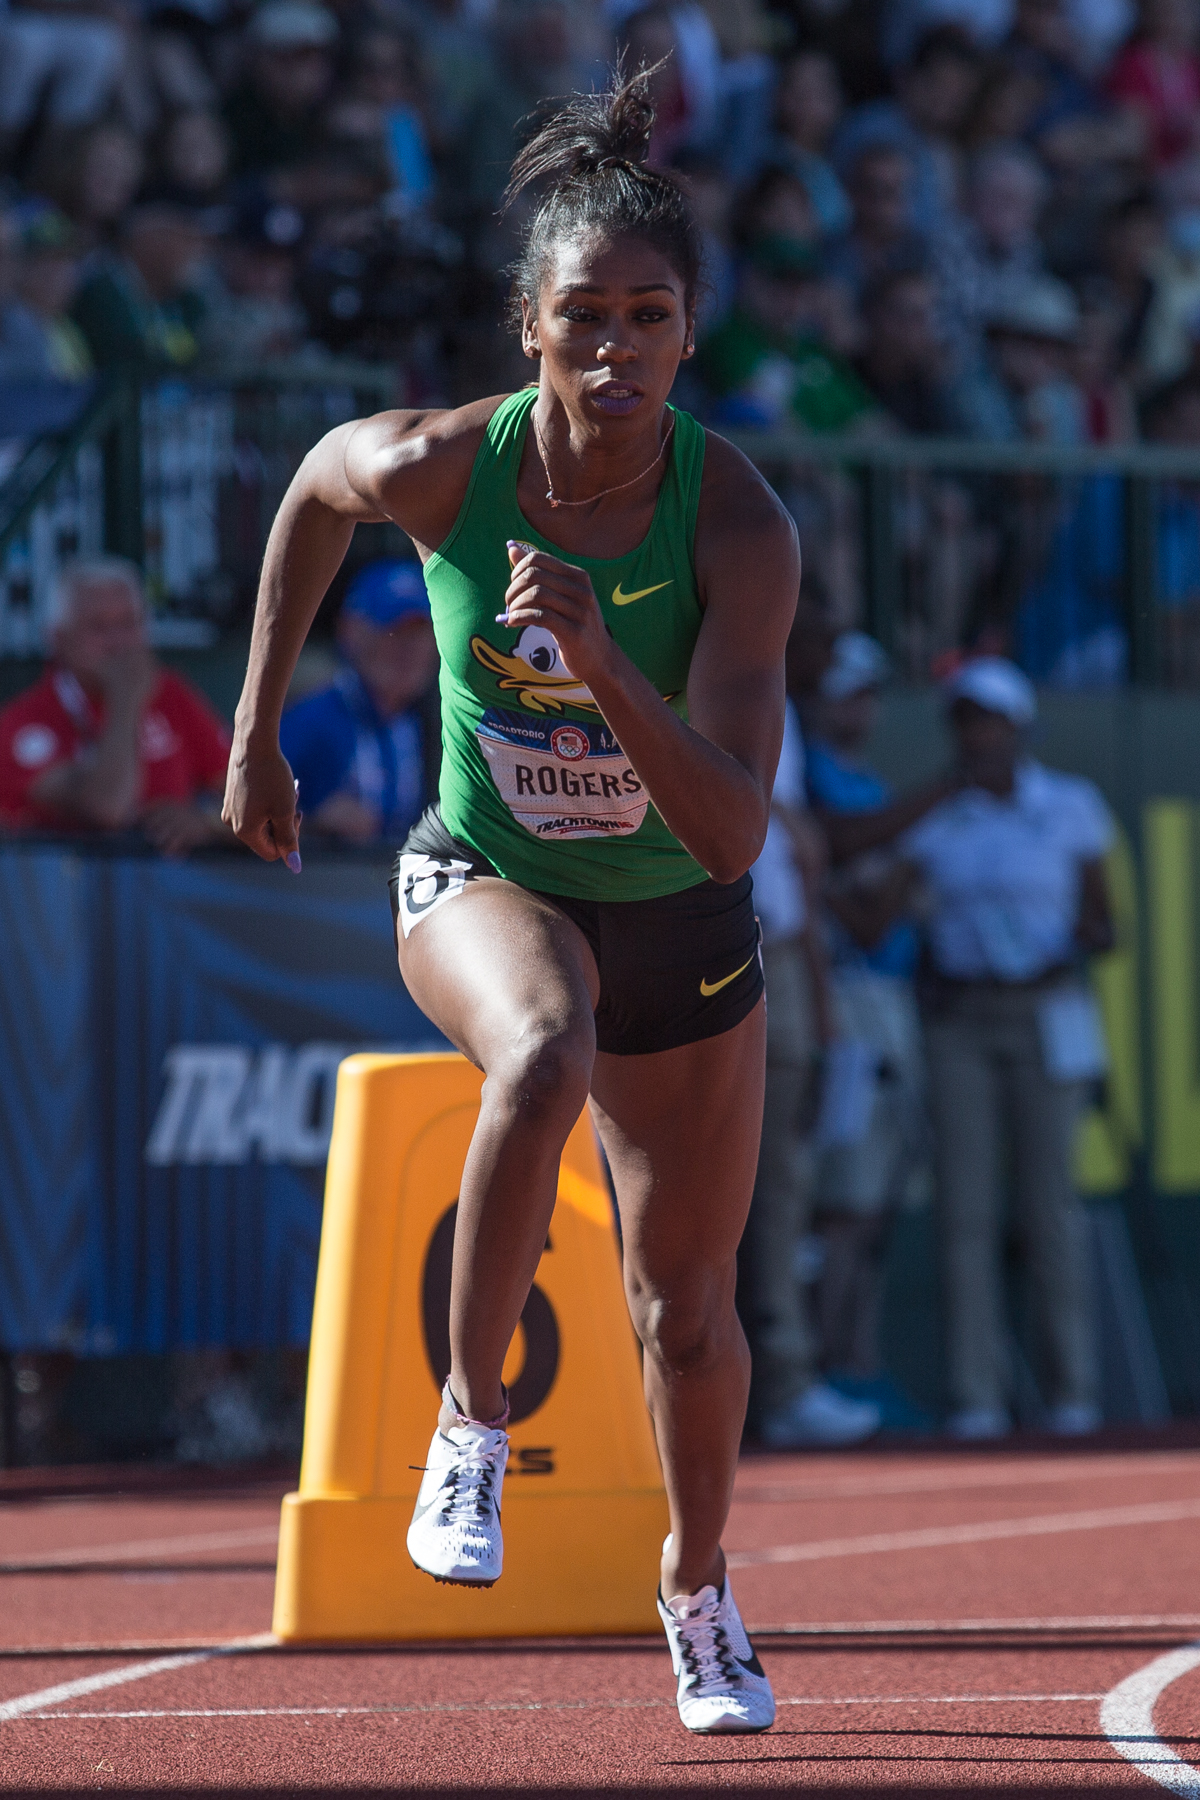 Oregon's Raevyn Rogers jumps off the block in the women�s 800m qualifying round. She placed 10th overall, advancing her to the next round. Photo by Dillon Vibes